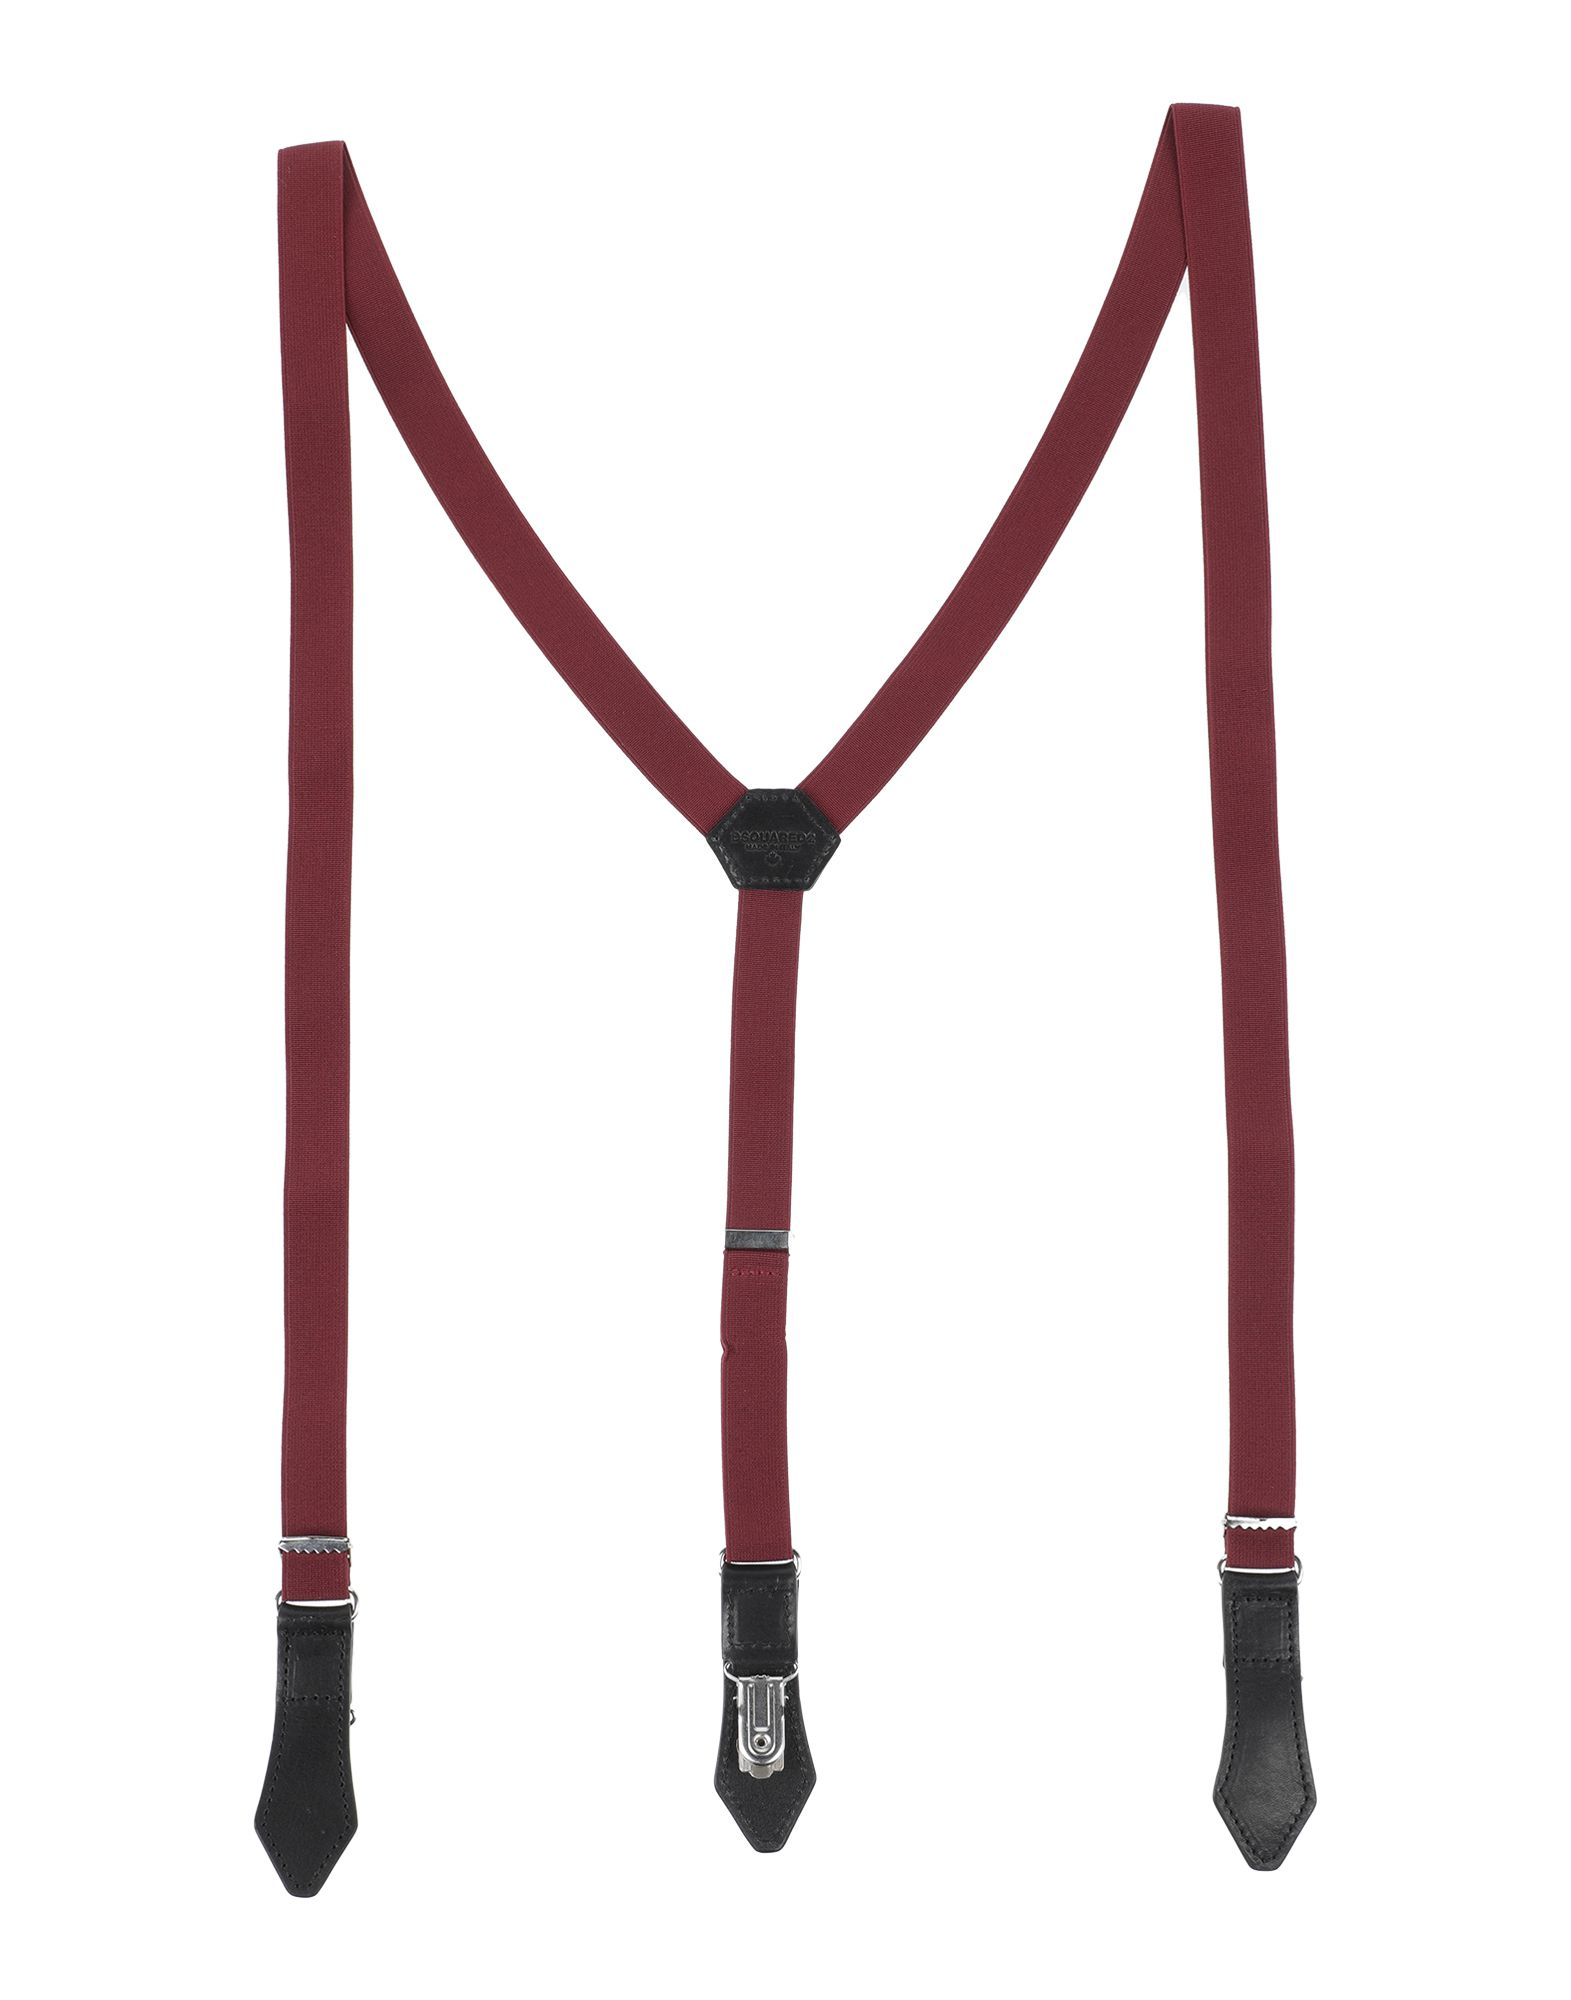 DSQUARED2 Suspenders. logo, solid color. Textile fibers